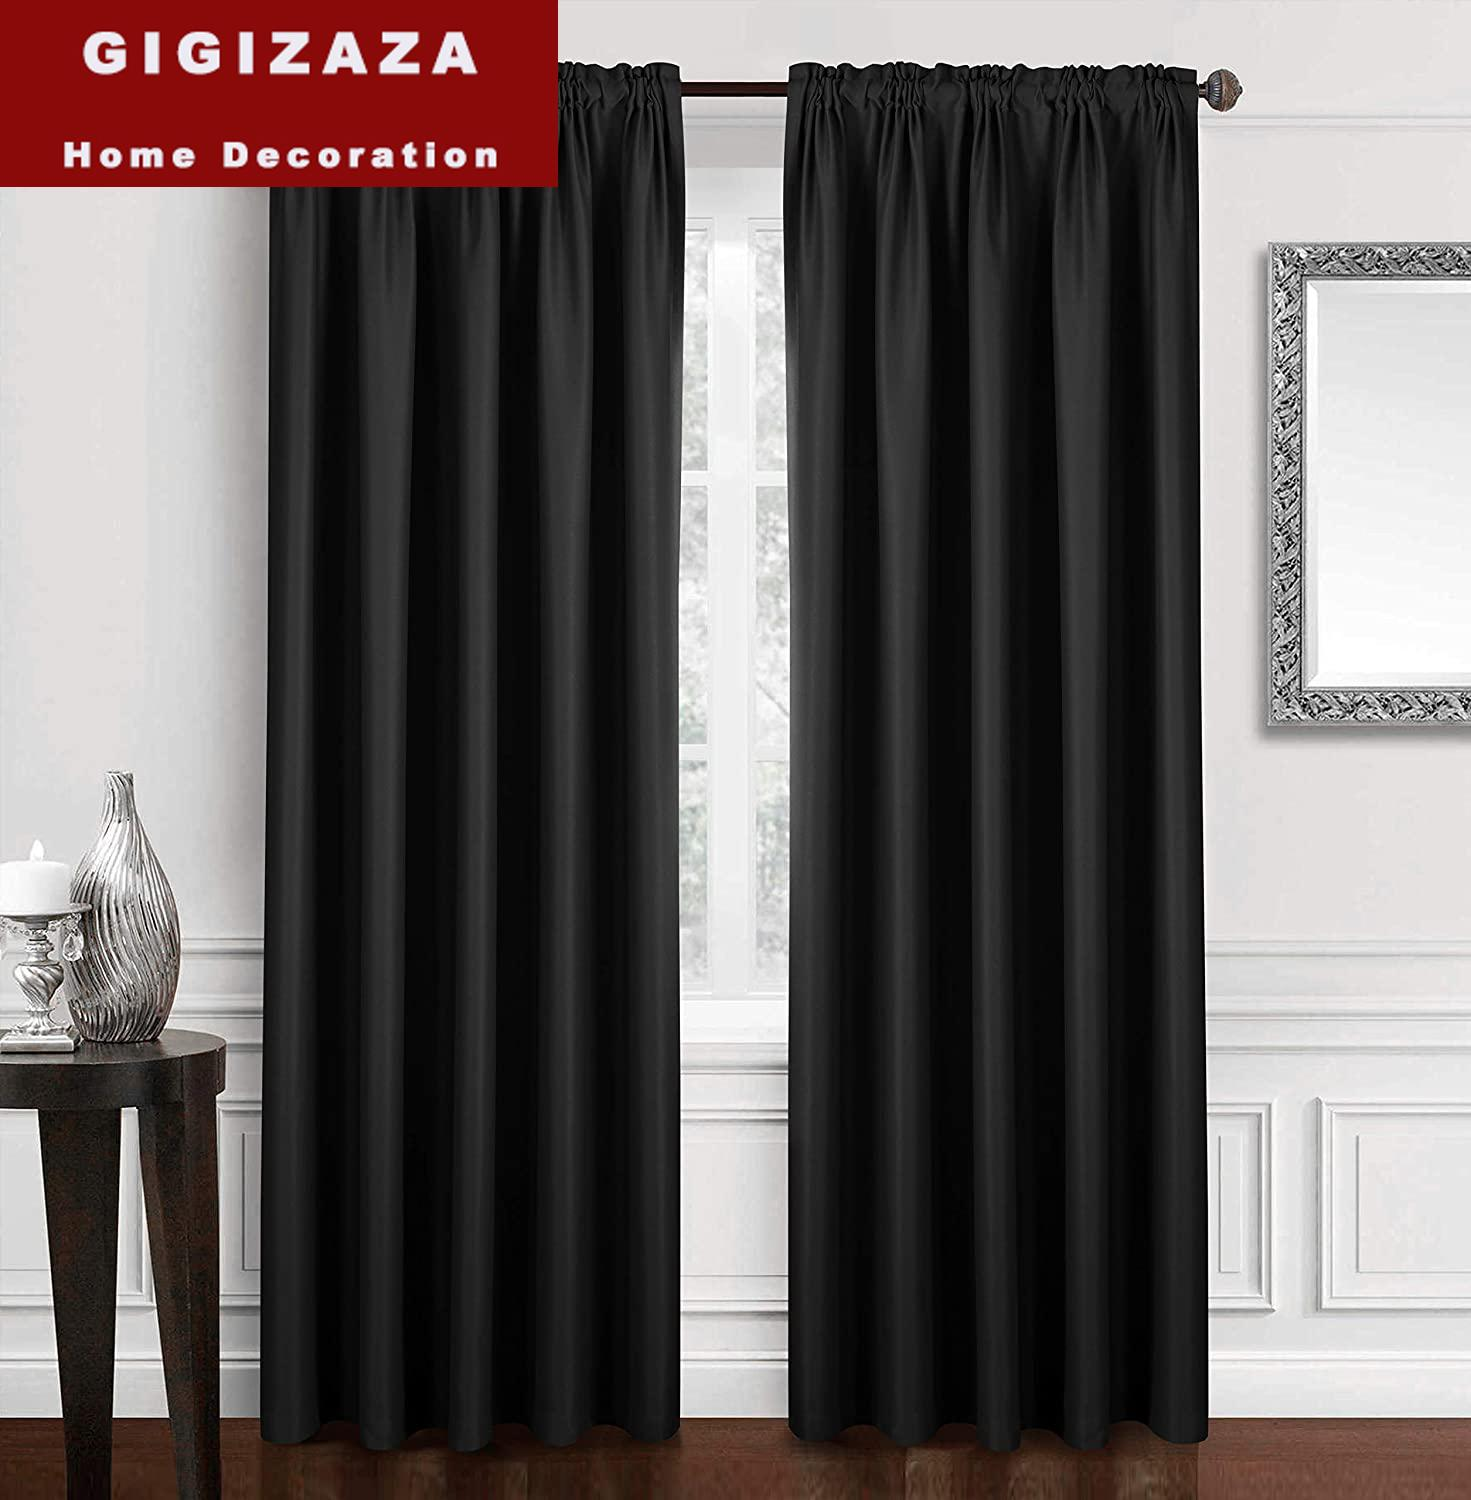 Top 10 Most Popular Black Cafe Curtain Brands And Get Free Shipping A107